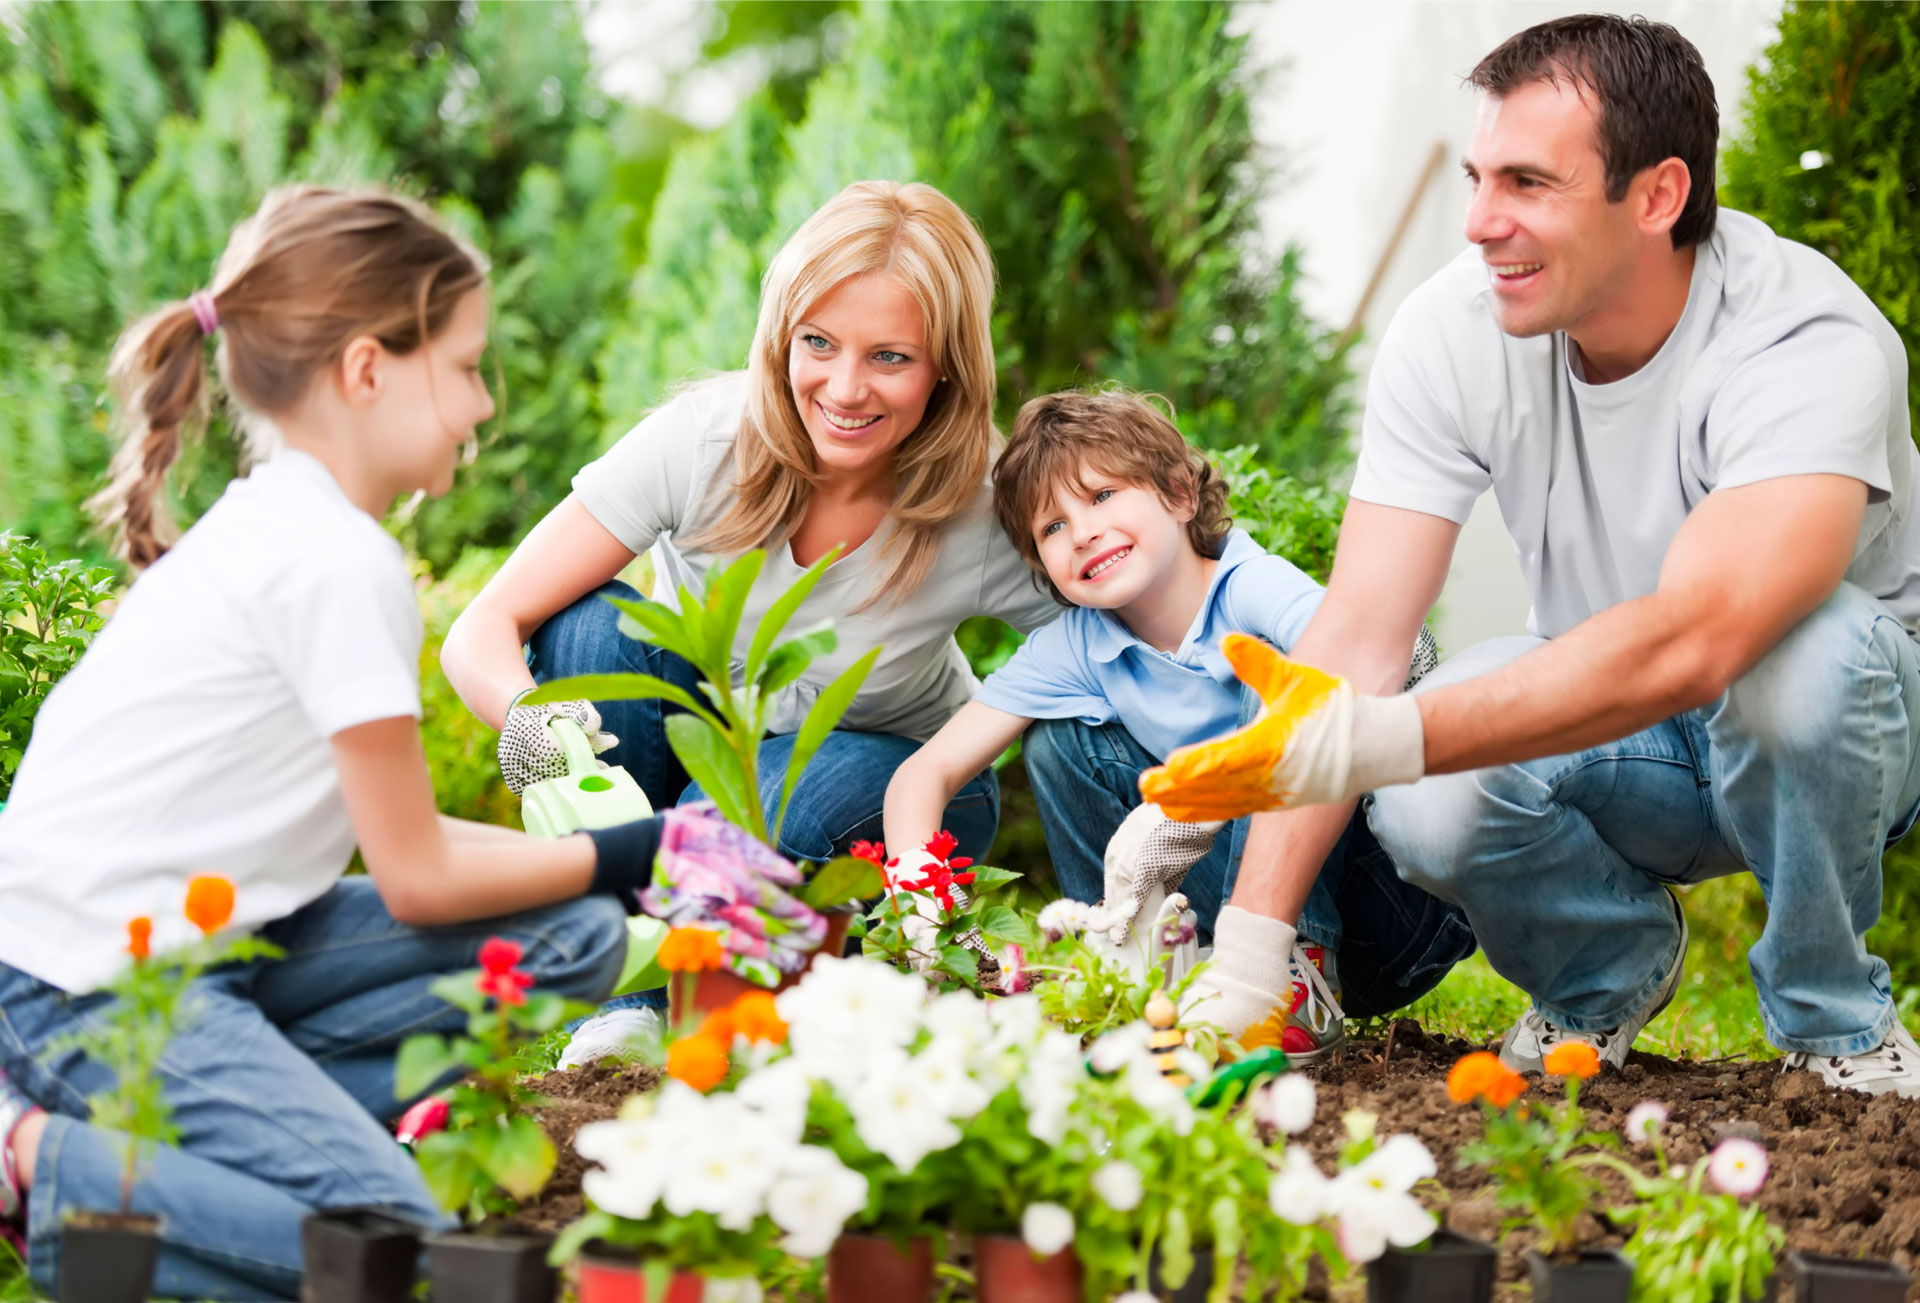 Landscaping For a Healthier Life: Resources from the DuPage Environmental Summit